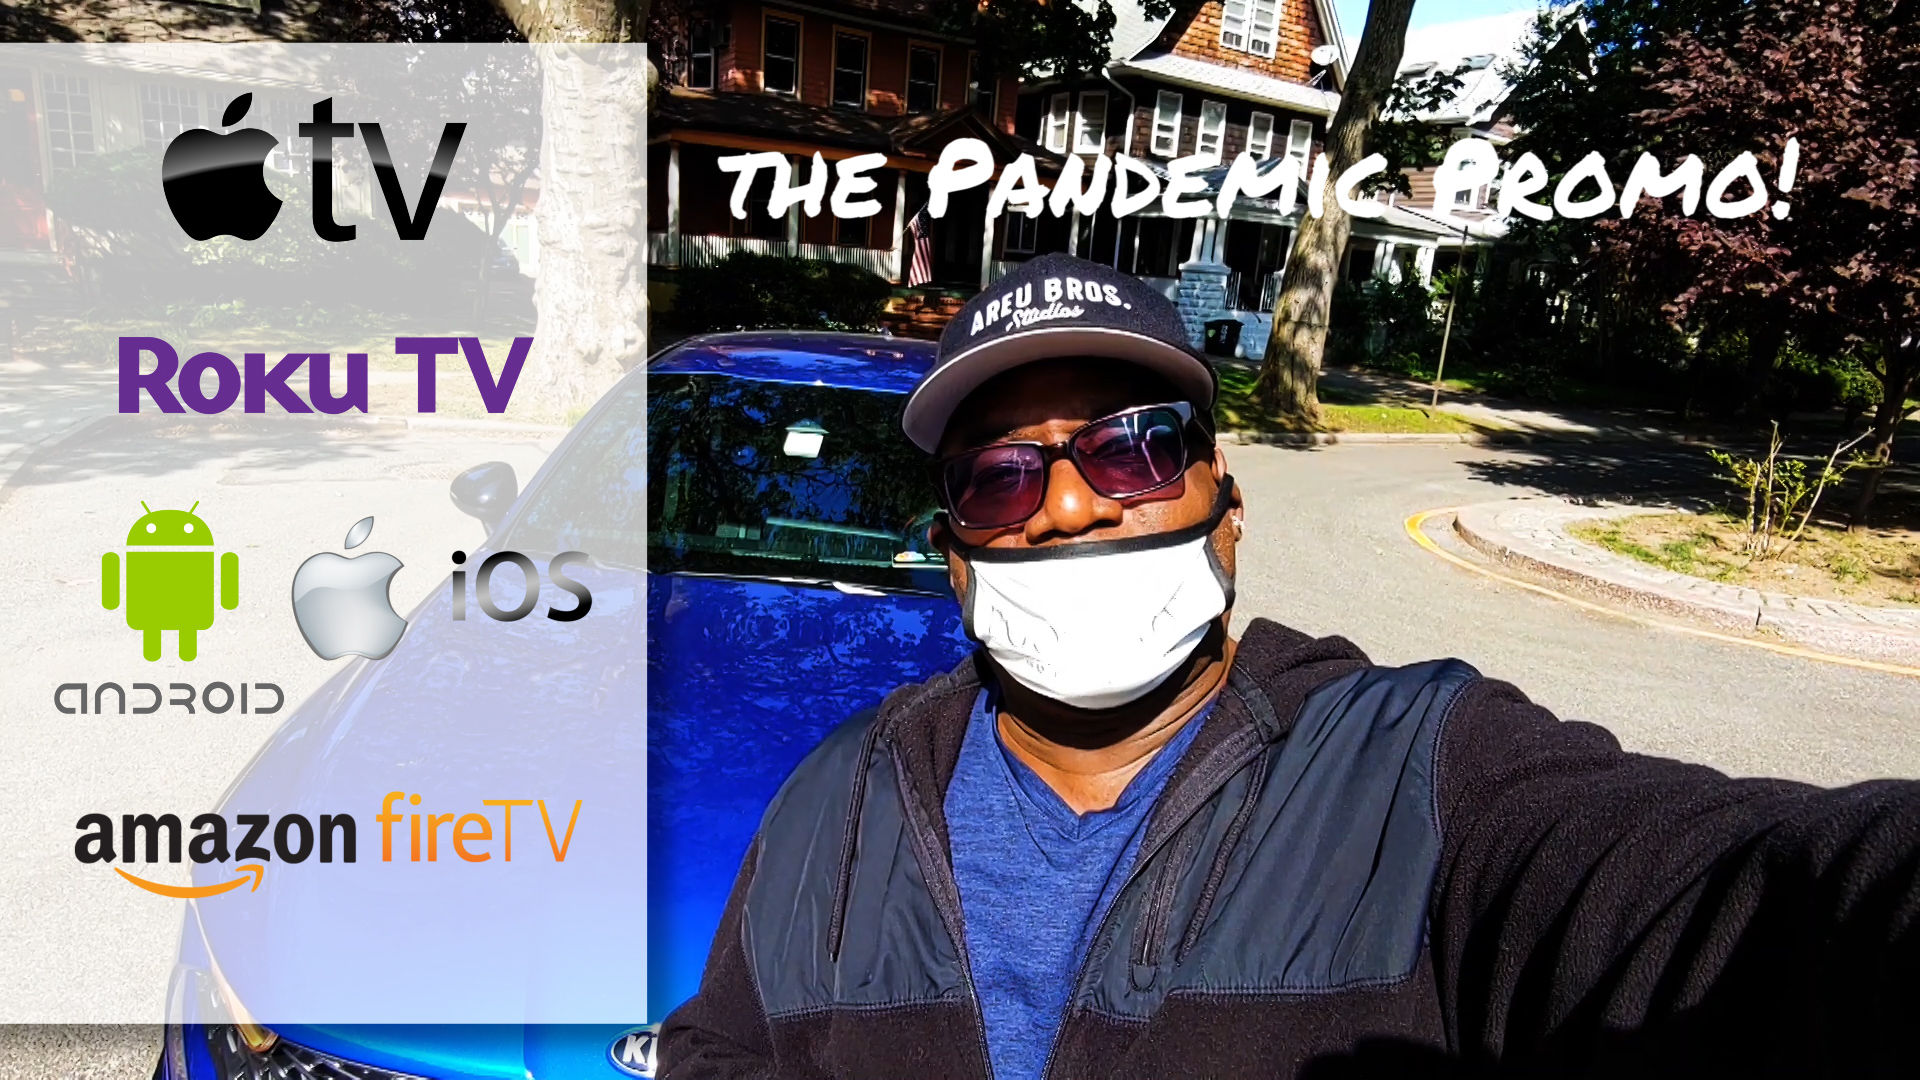 The Footprint Network Pandemic Promo